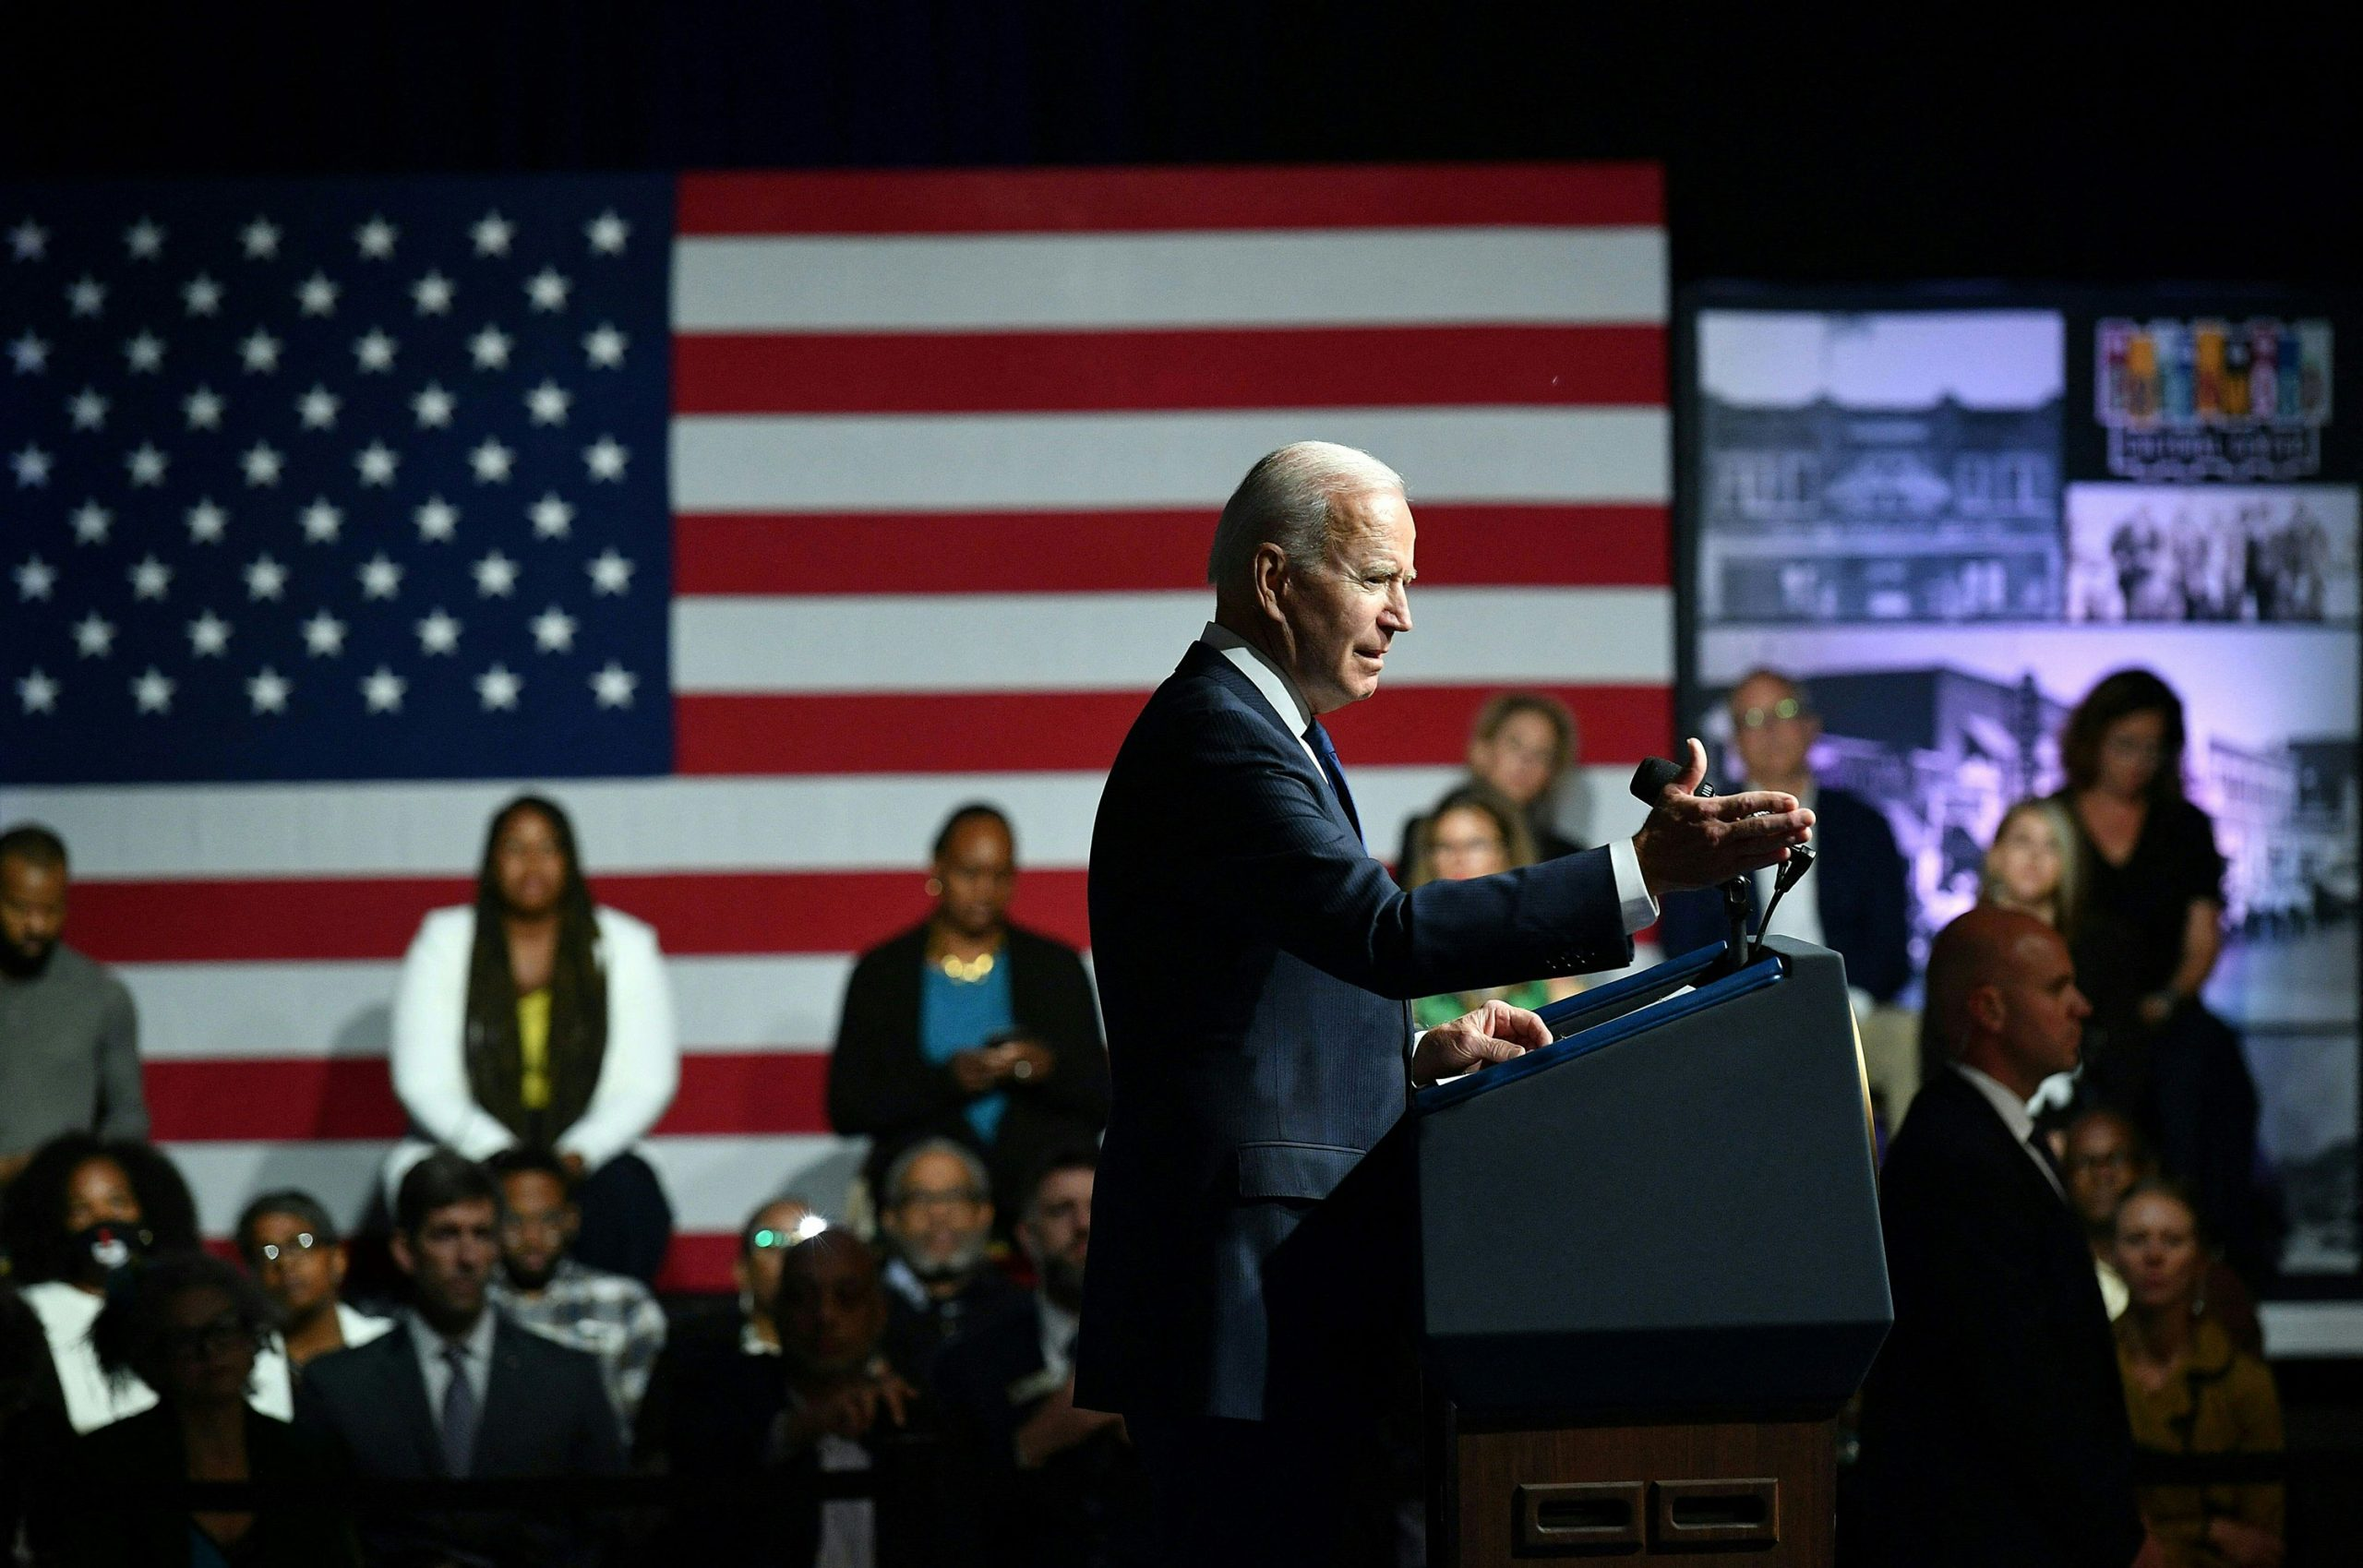 Biden: 'This was not a riot. This was a massacre.' 1